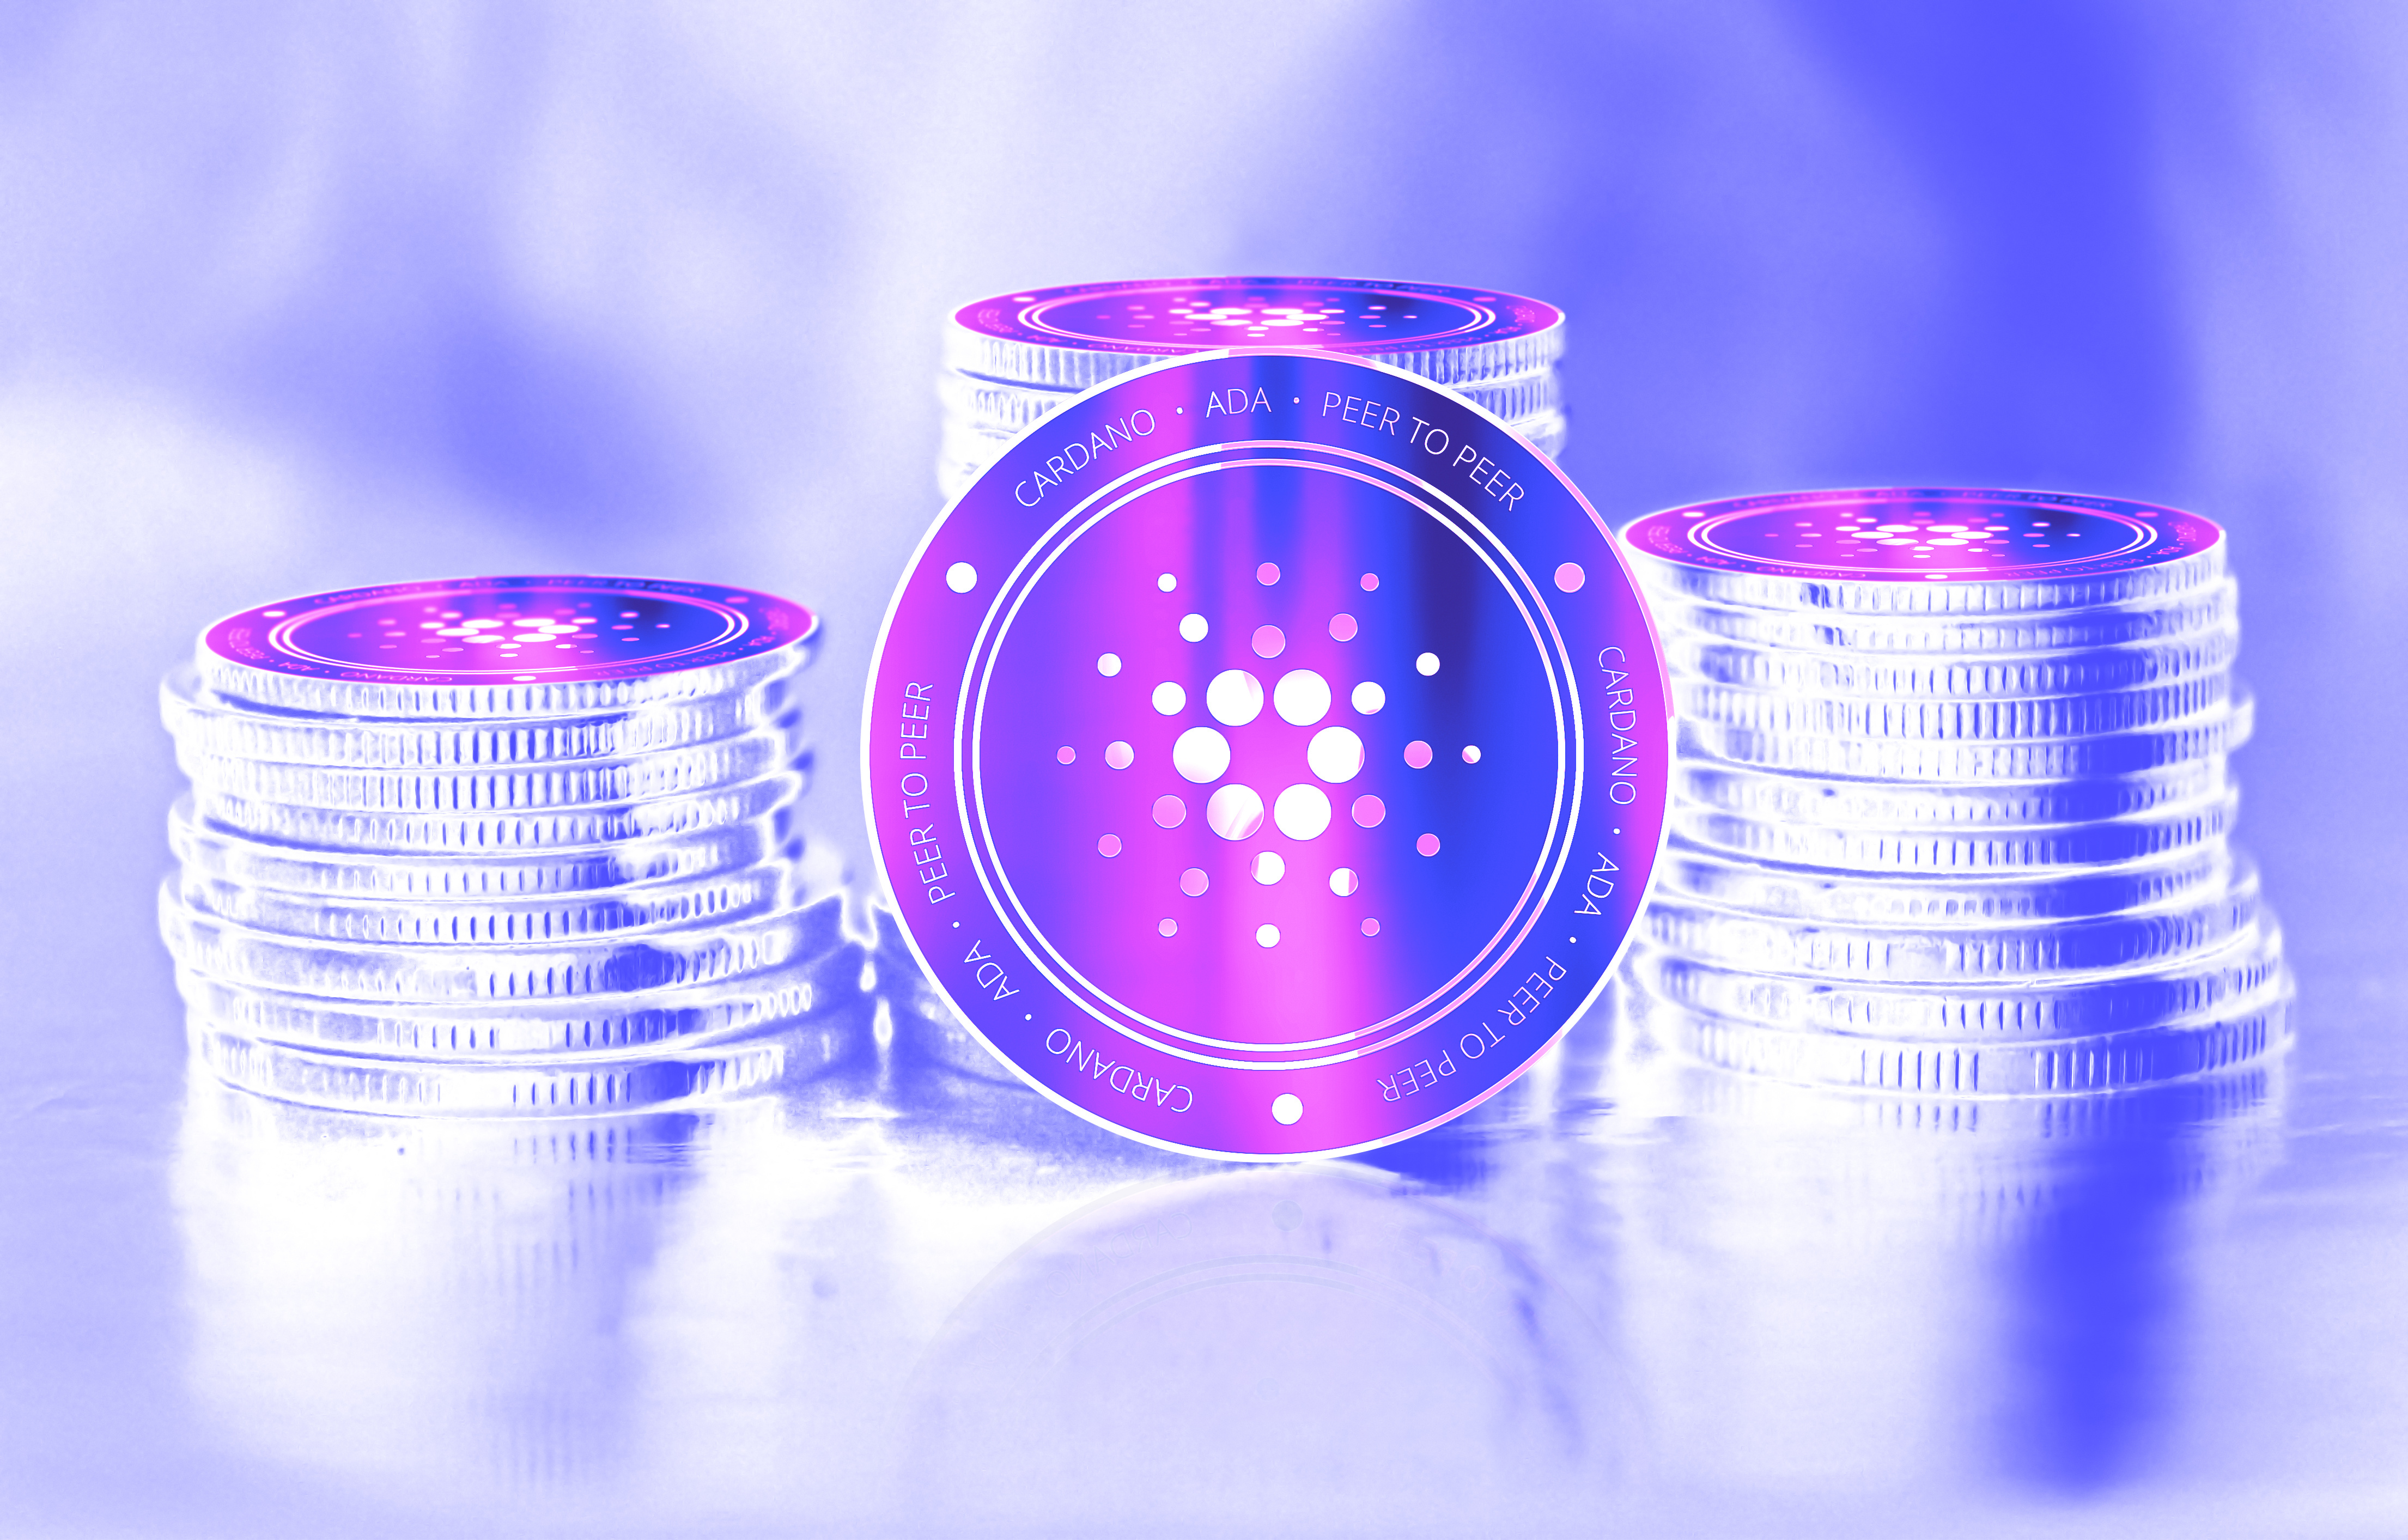 Cardano's Rally Pauses as Smart Contract Launch is Re-confirmed